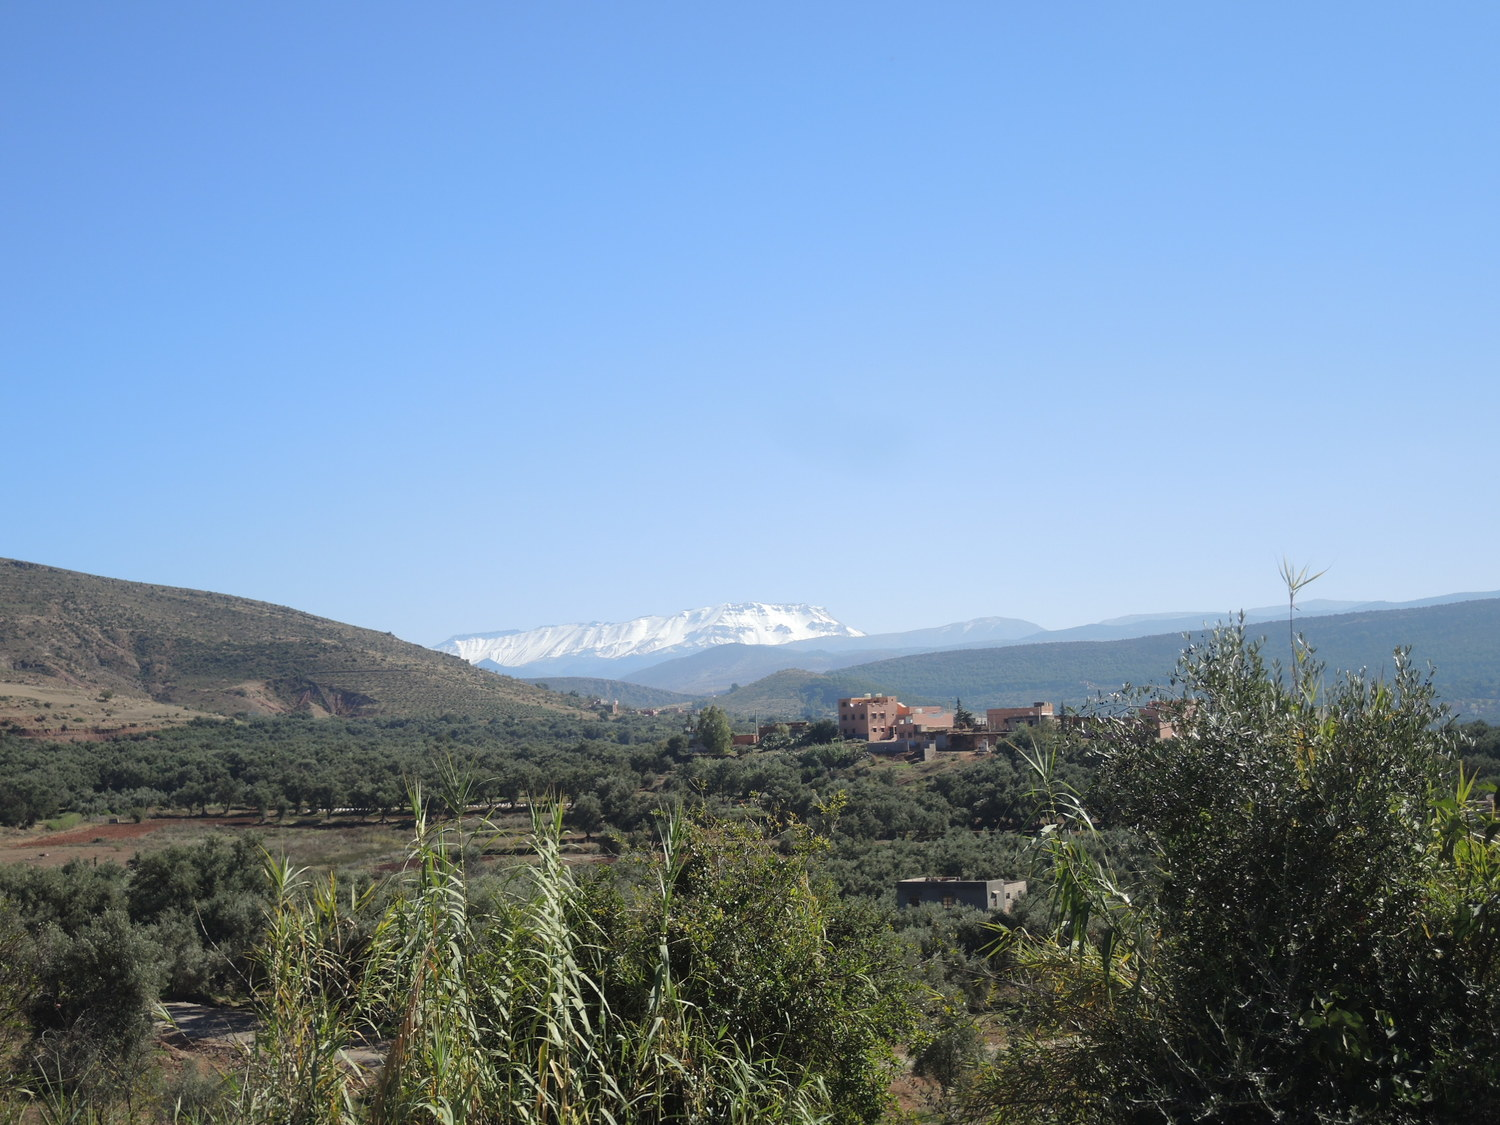 Snowy Atlas Mountains